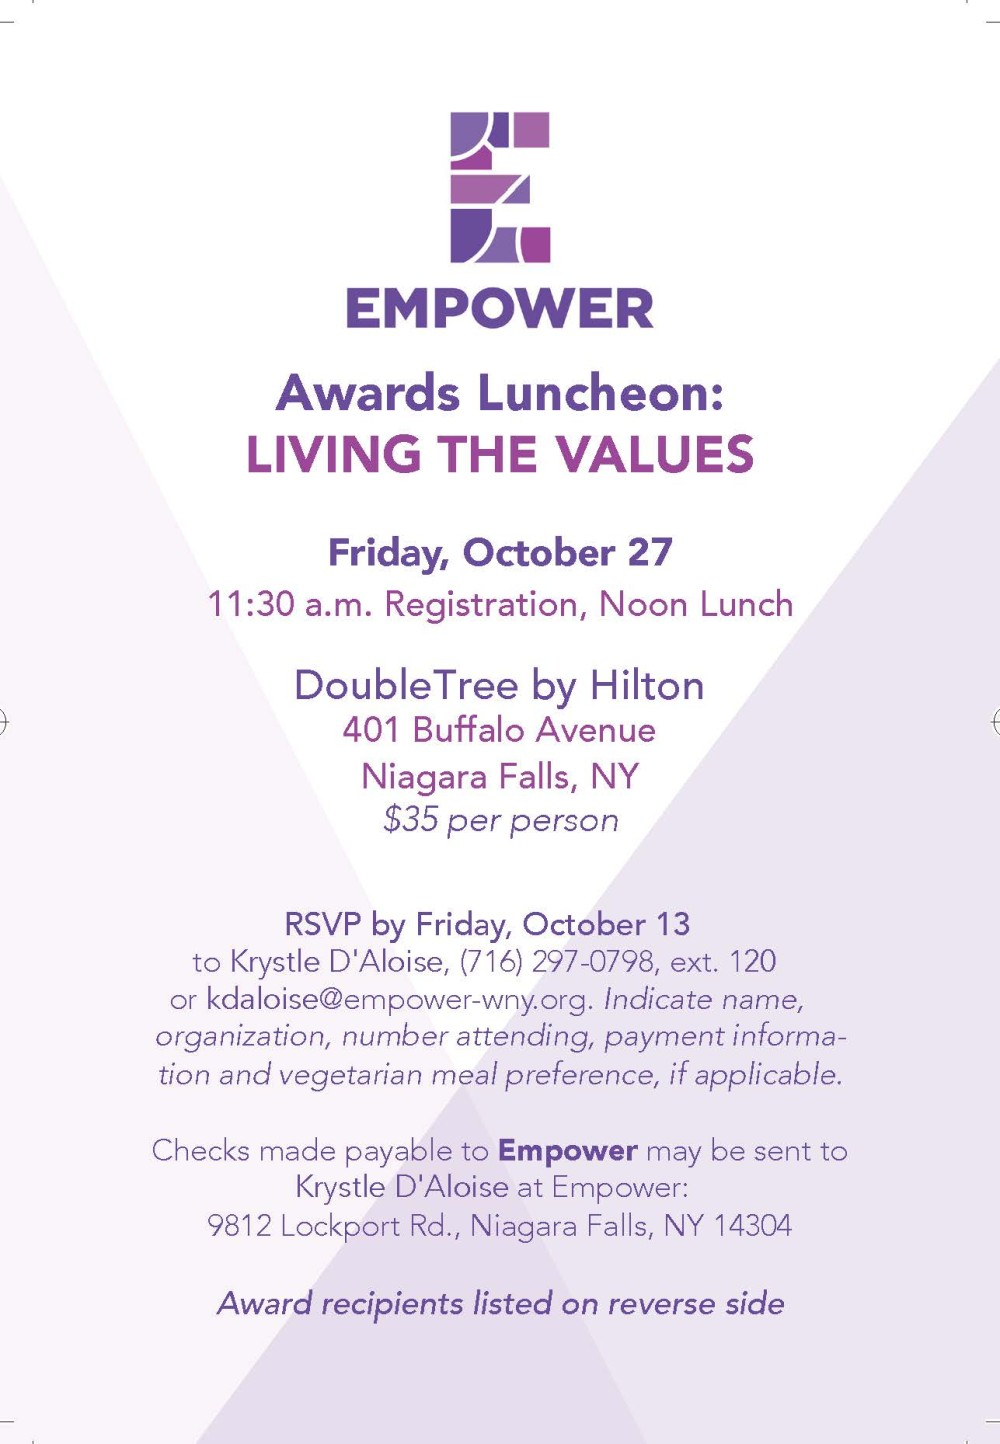 Living the Values Awards Luncheon invite_Page_1